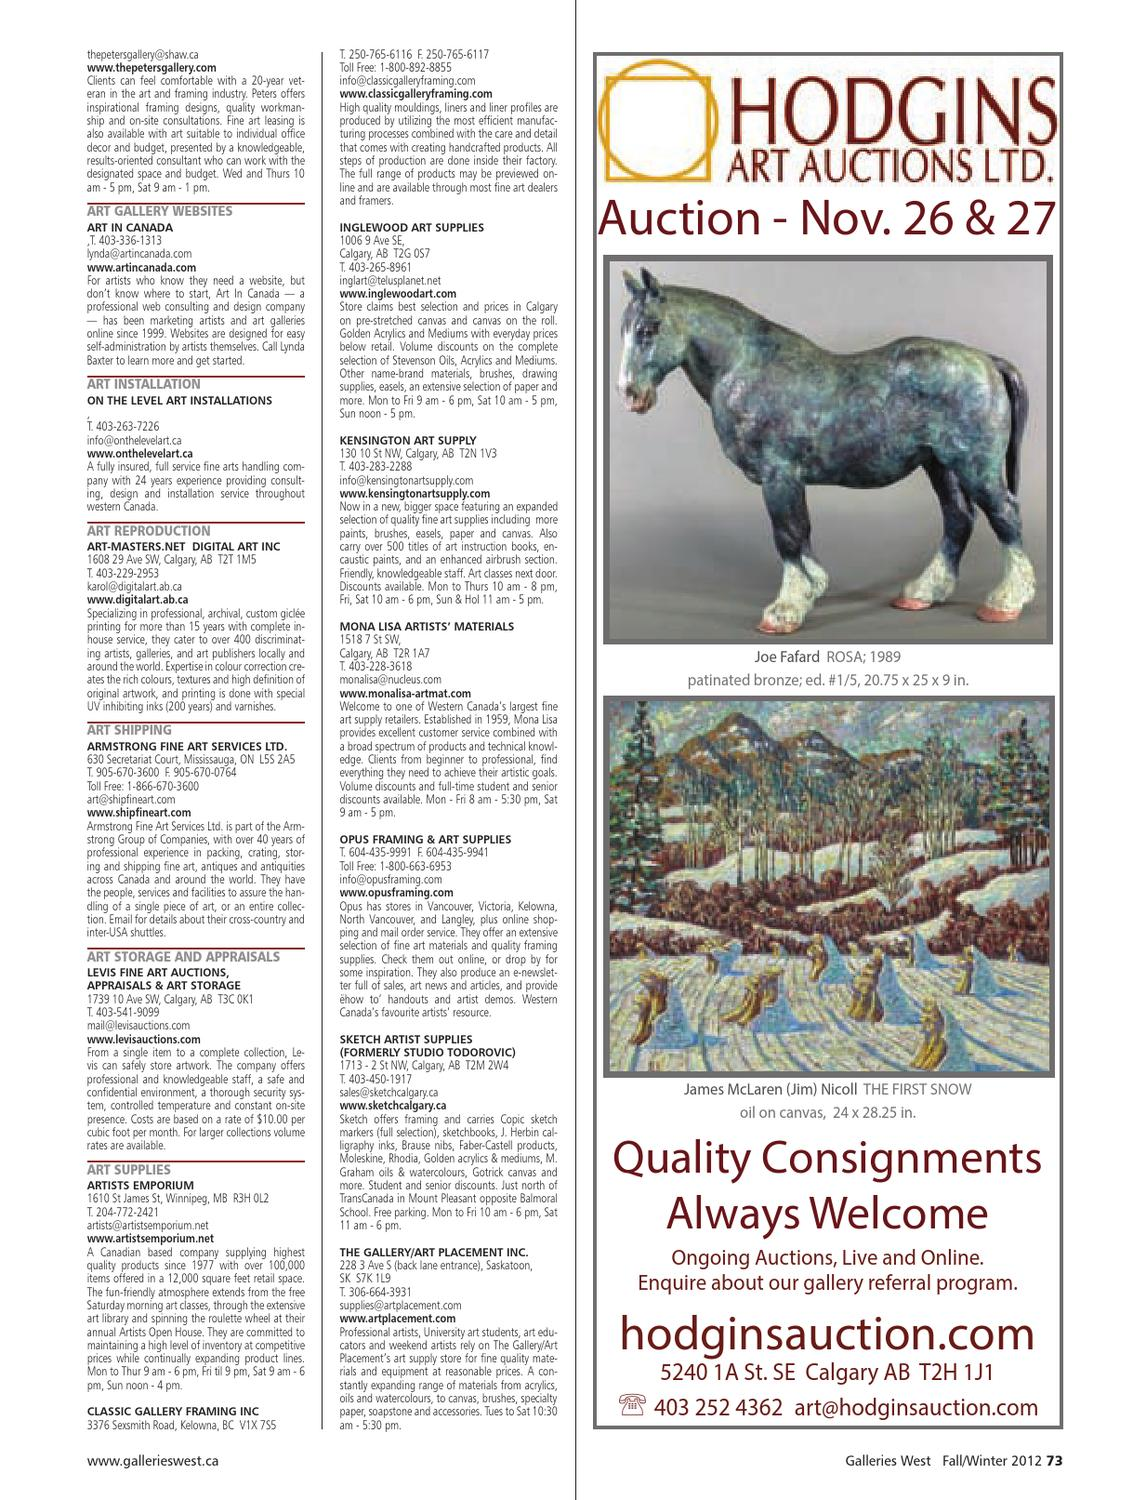 Galleries West Fall/Winter 2012 by Galleries West - issuu